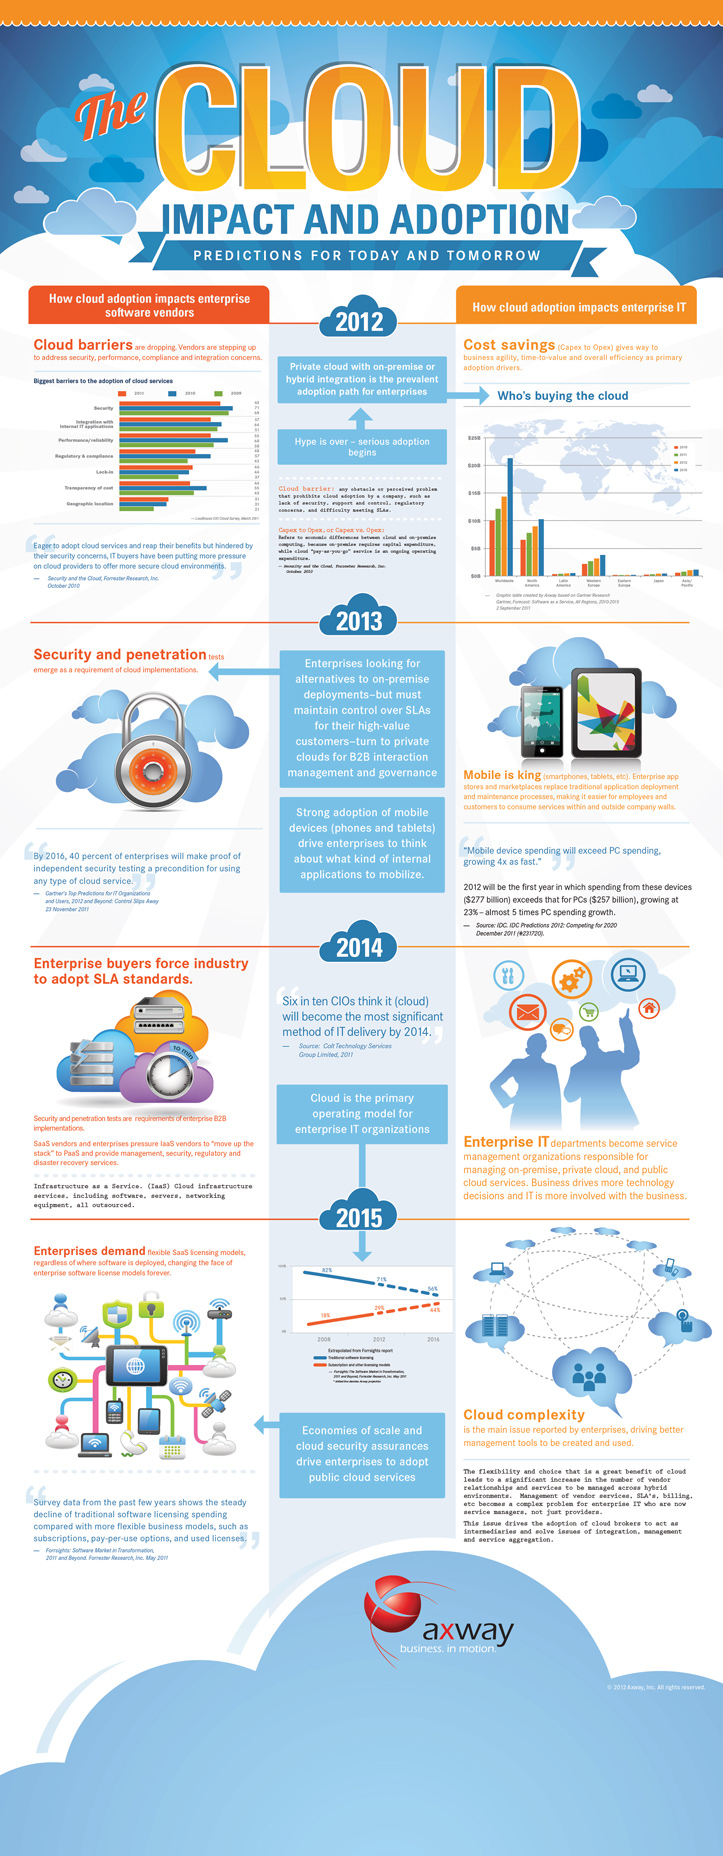 Axway Infographic - Cloud Impact and Adoption